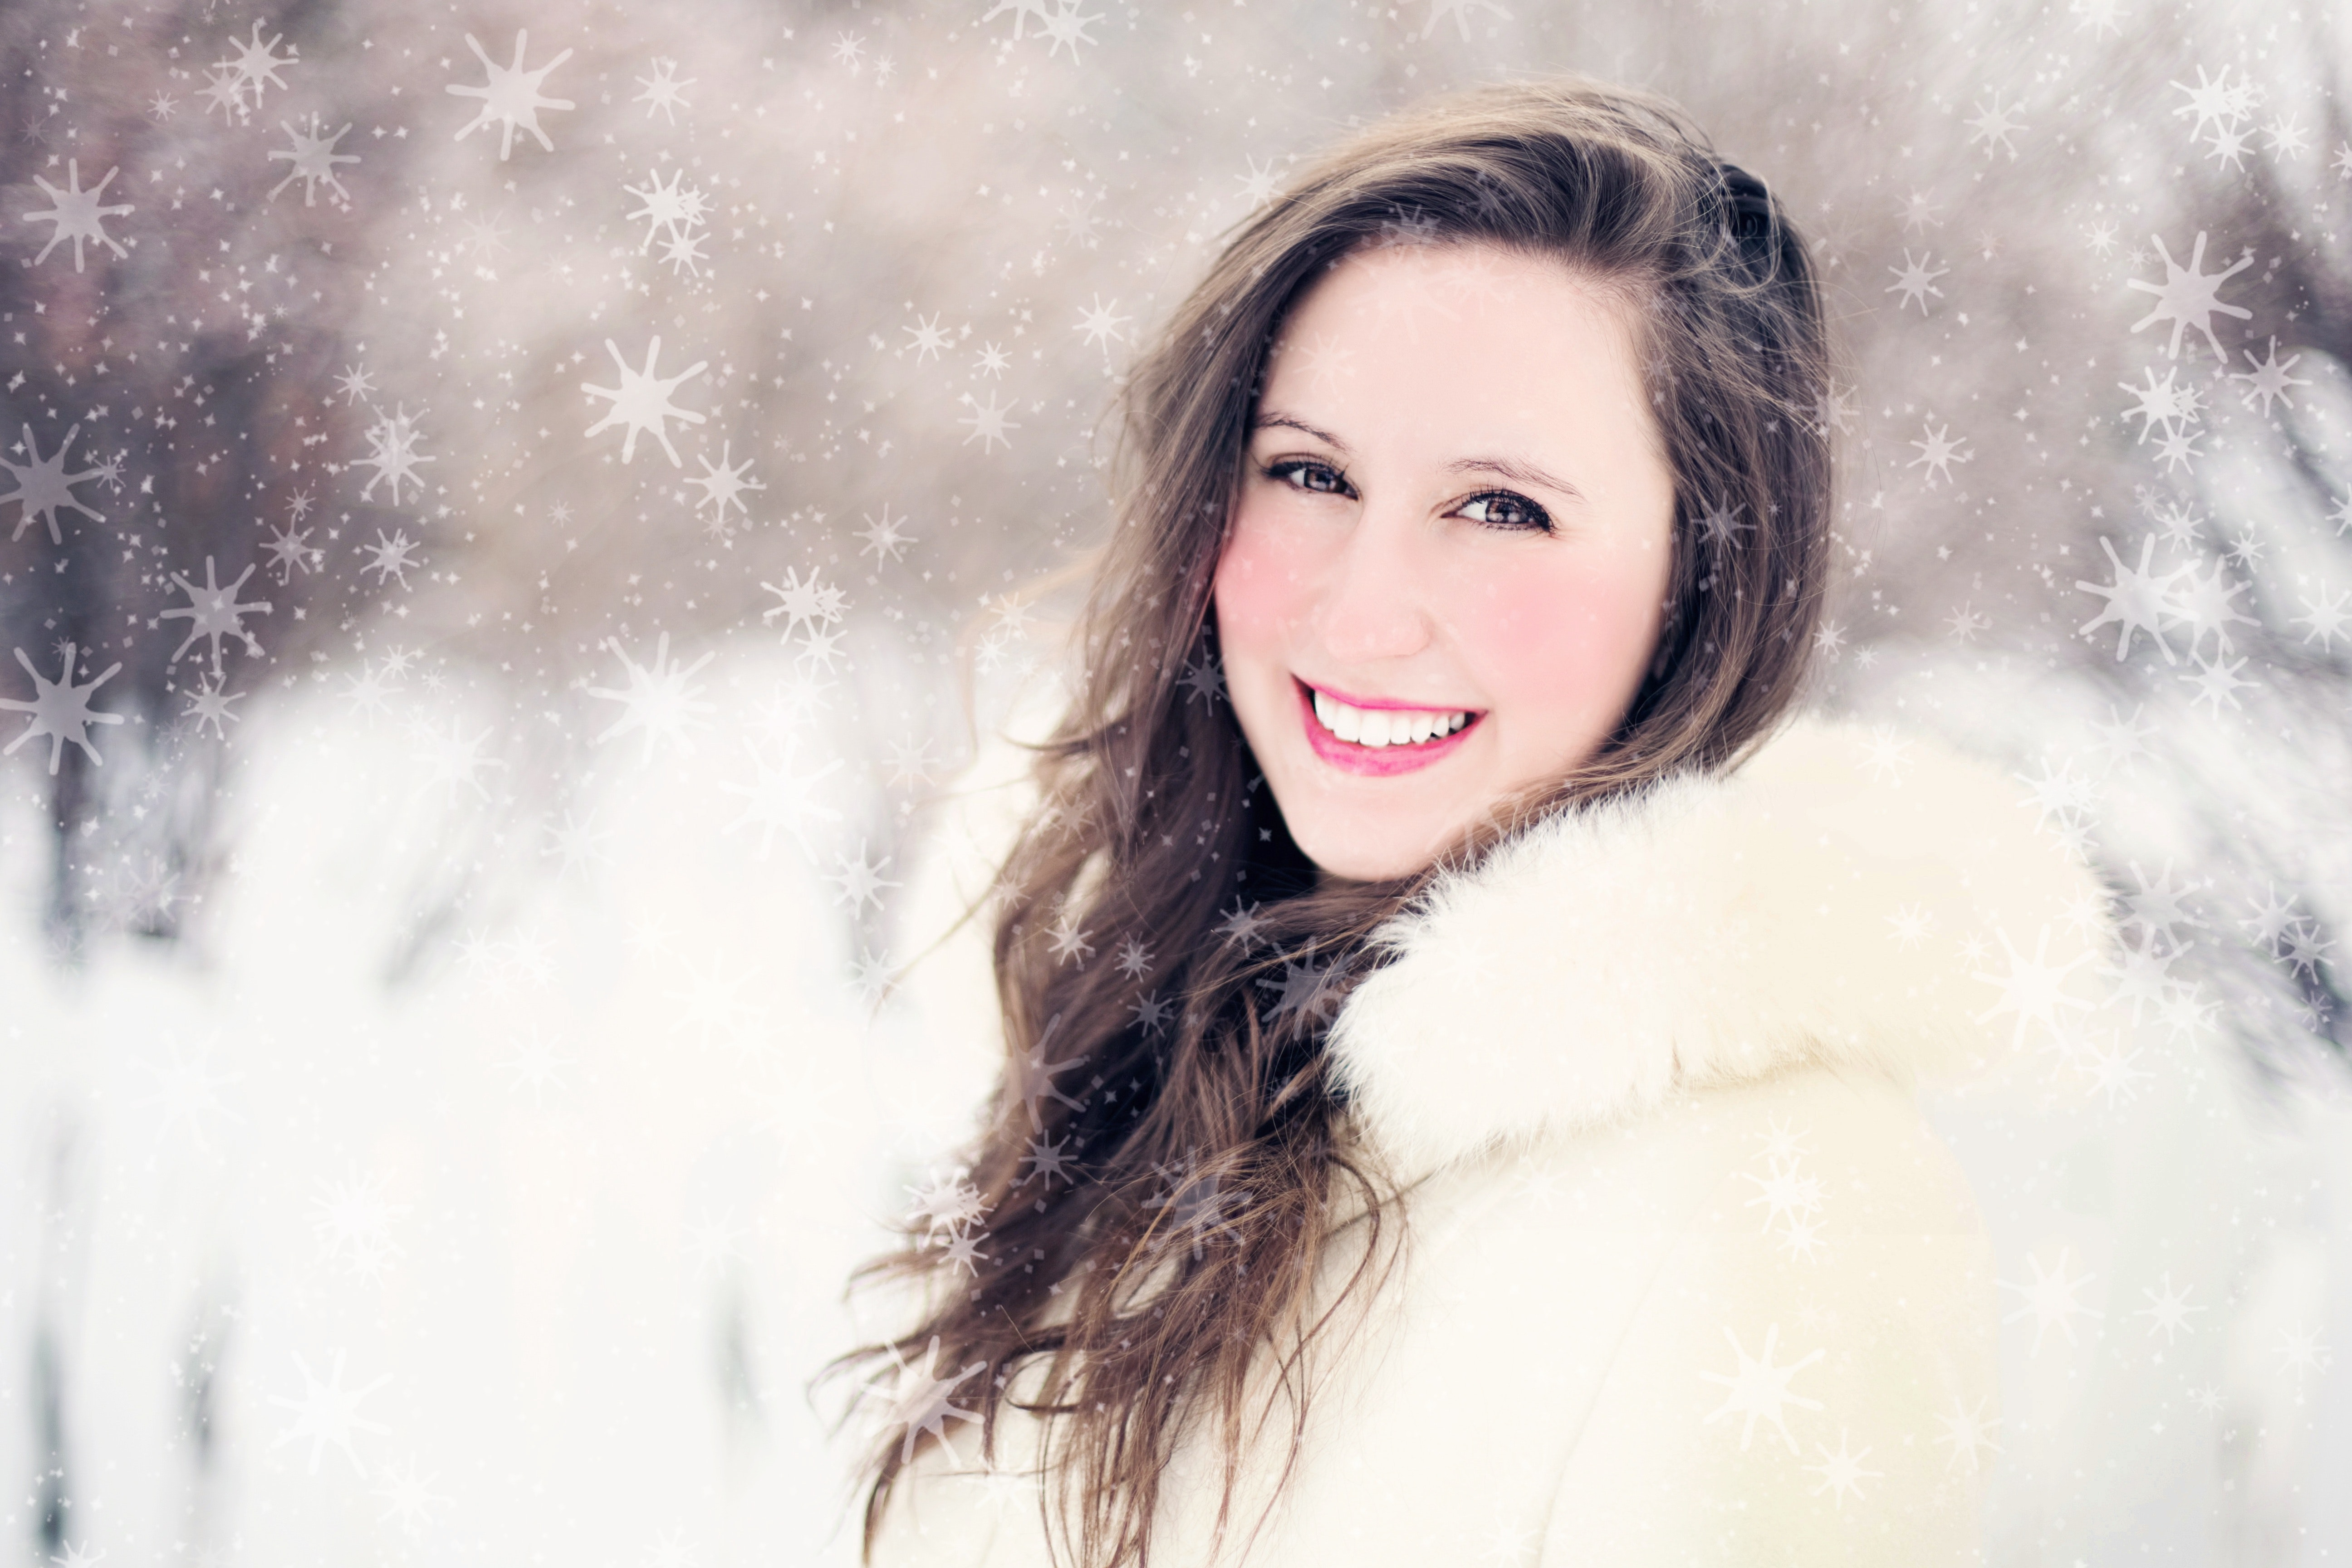 Woman in White Furred Jacket Smiling in Front, Beautiful, Model, Winter, Snowflakes, HQ Photo